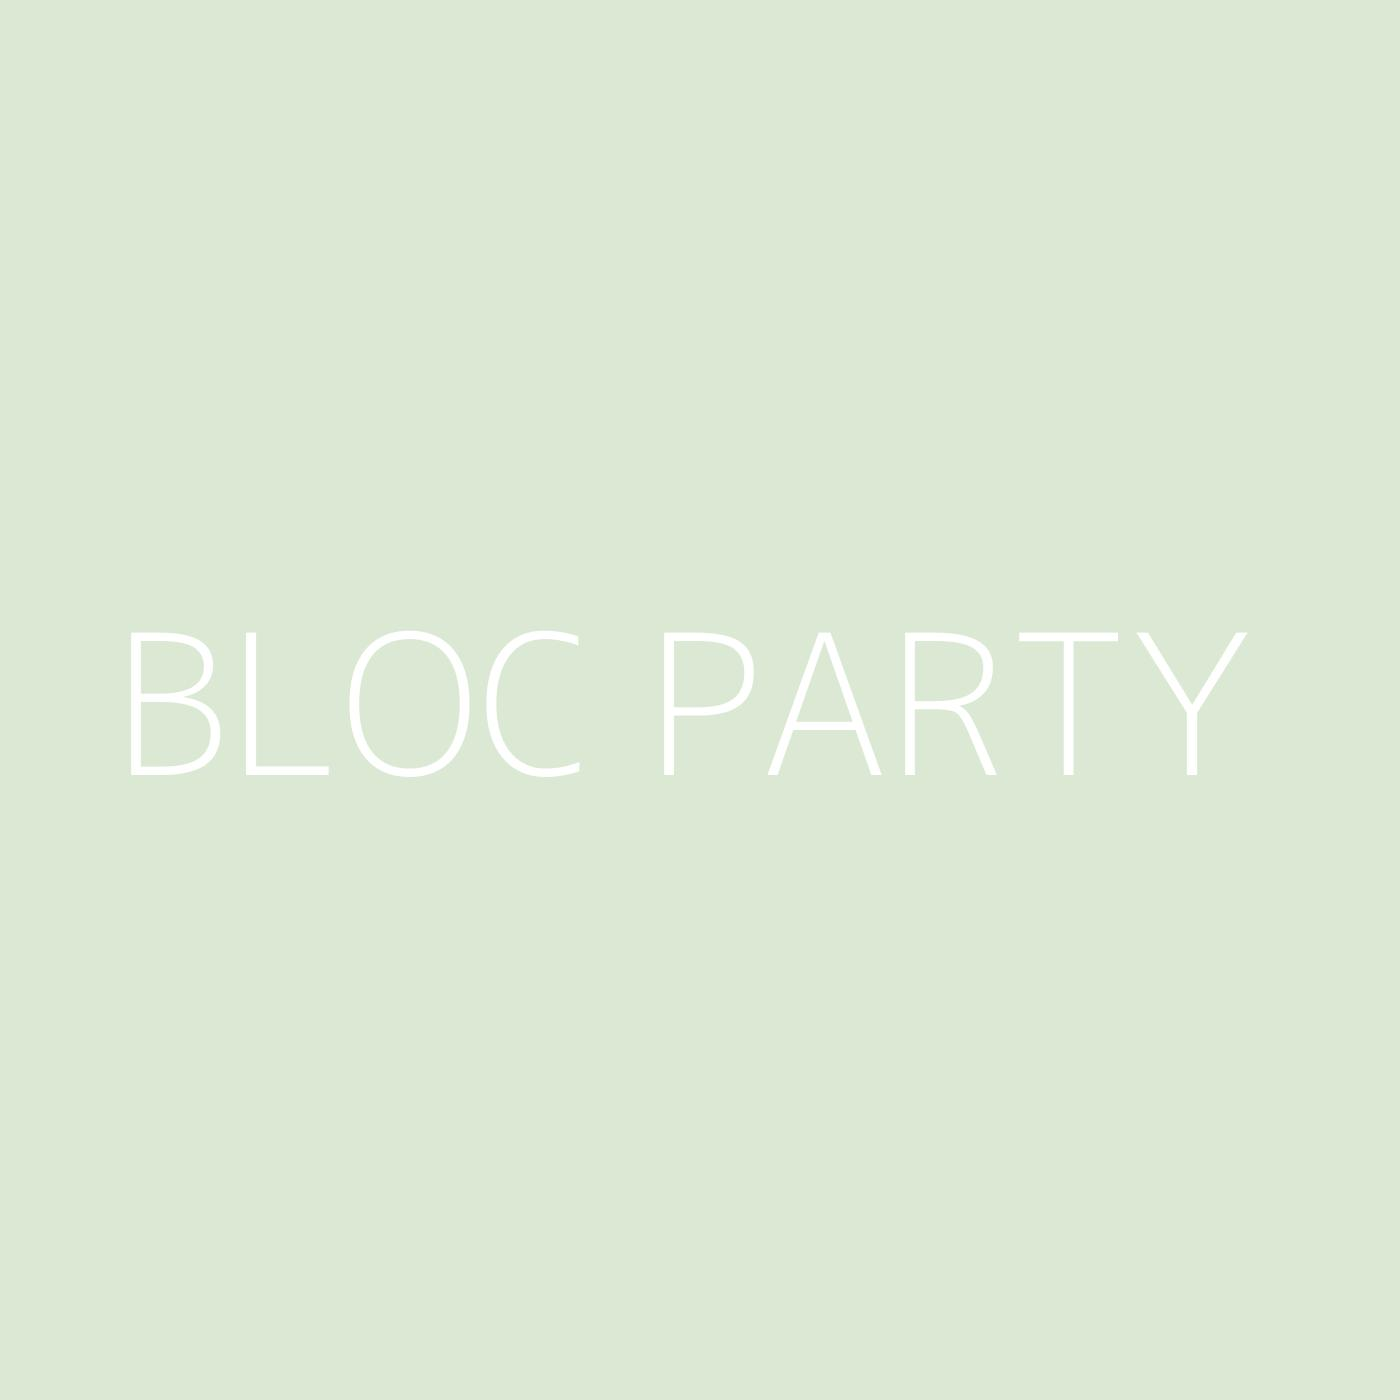 Bloc Party Playlist Artwork